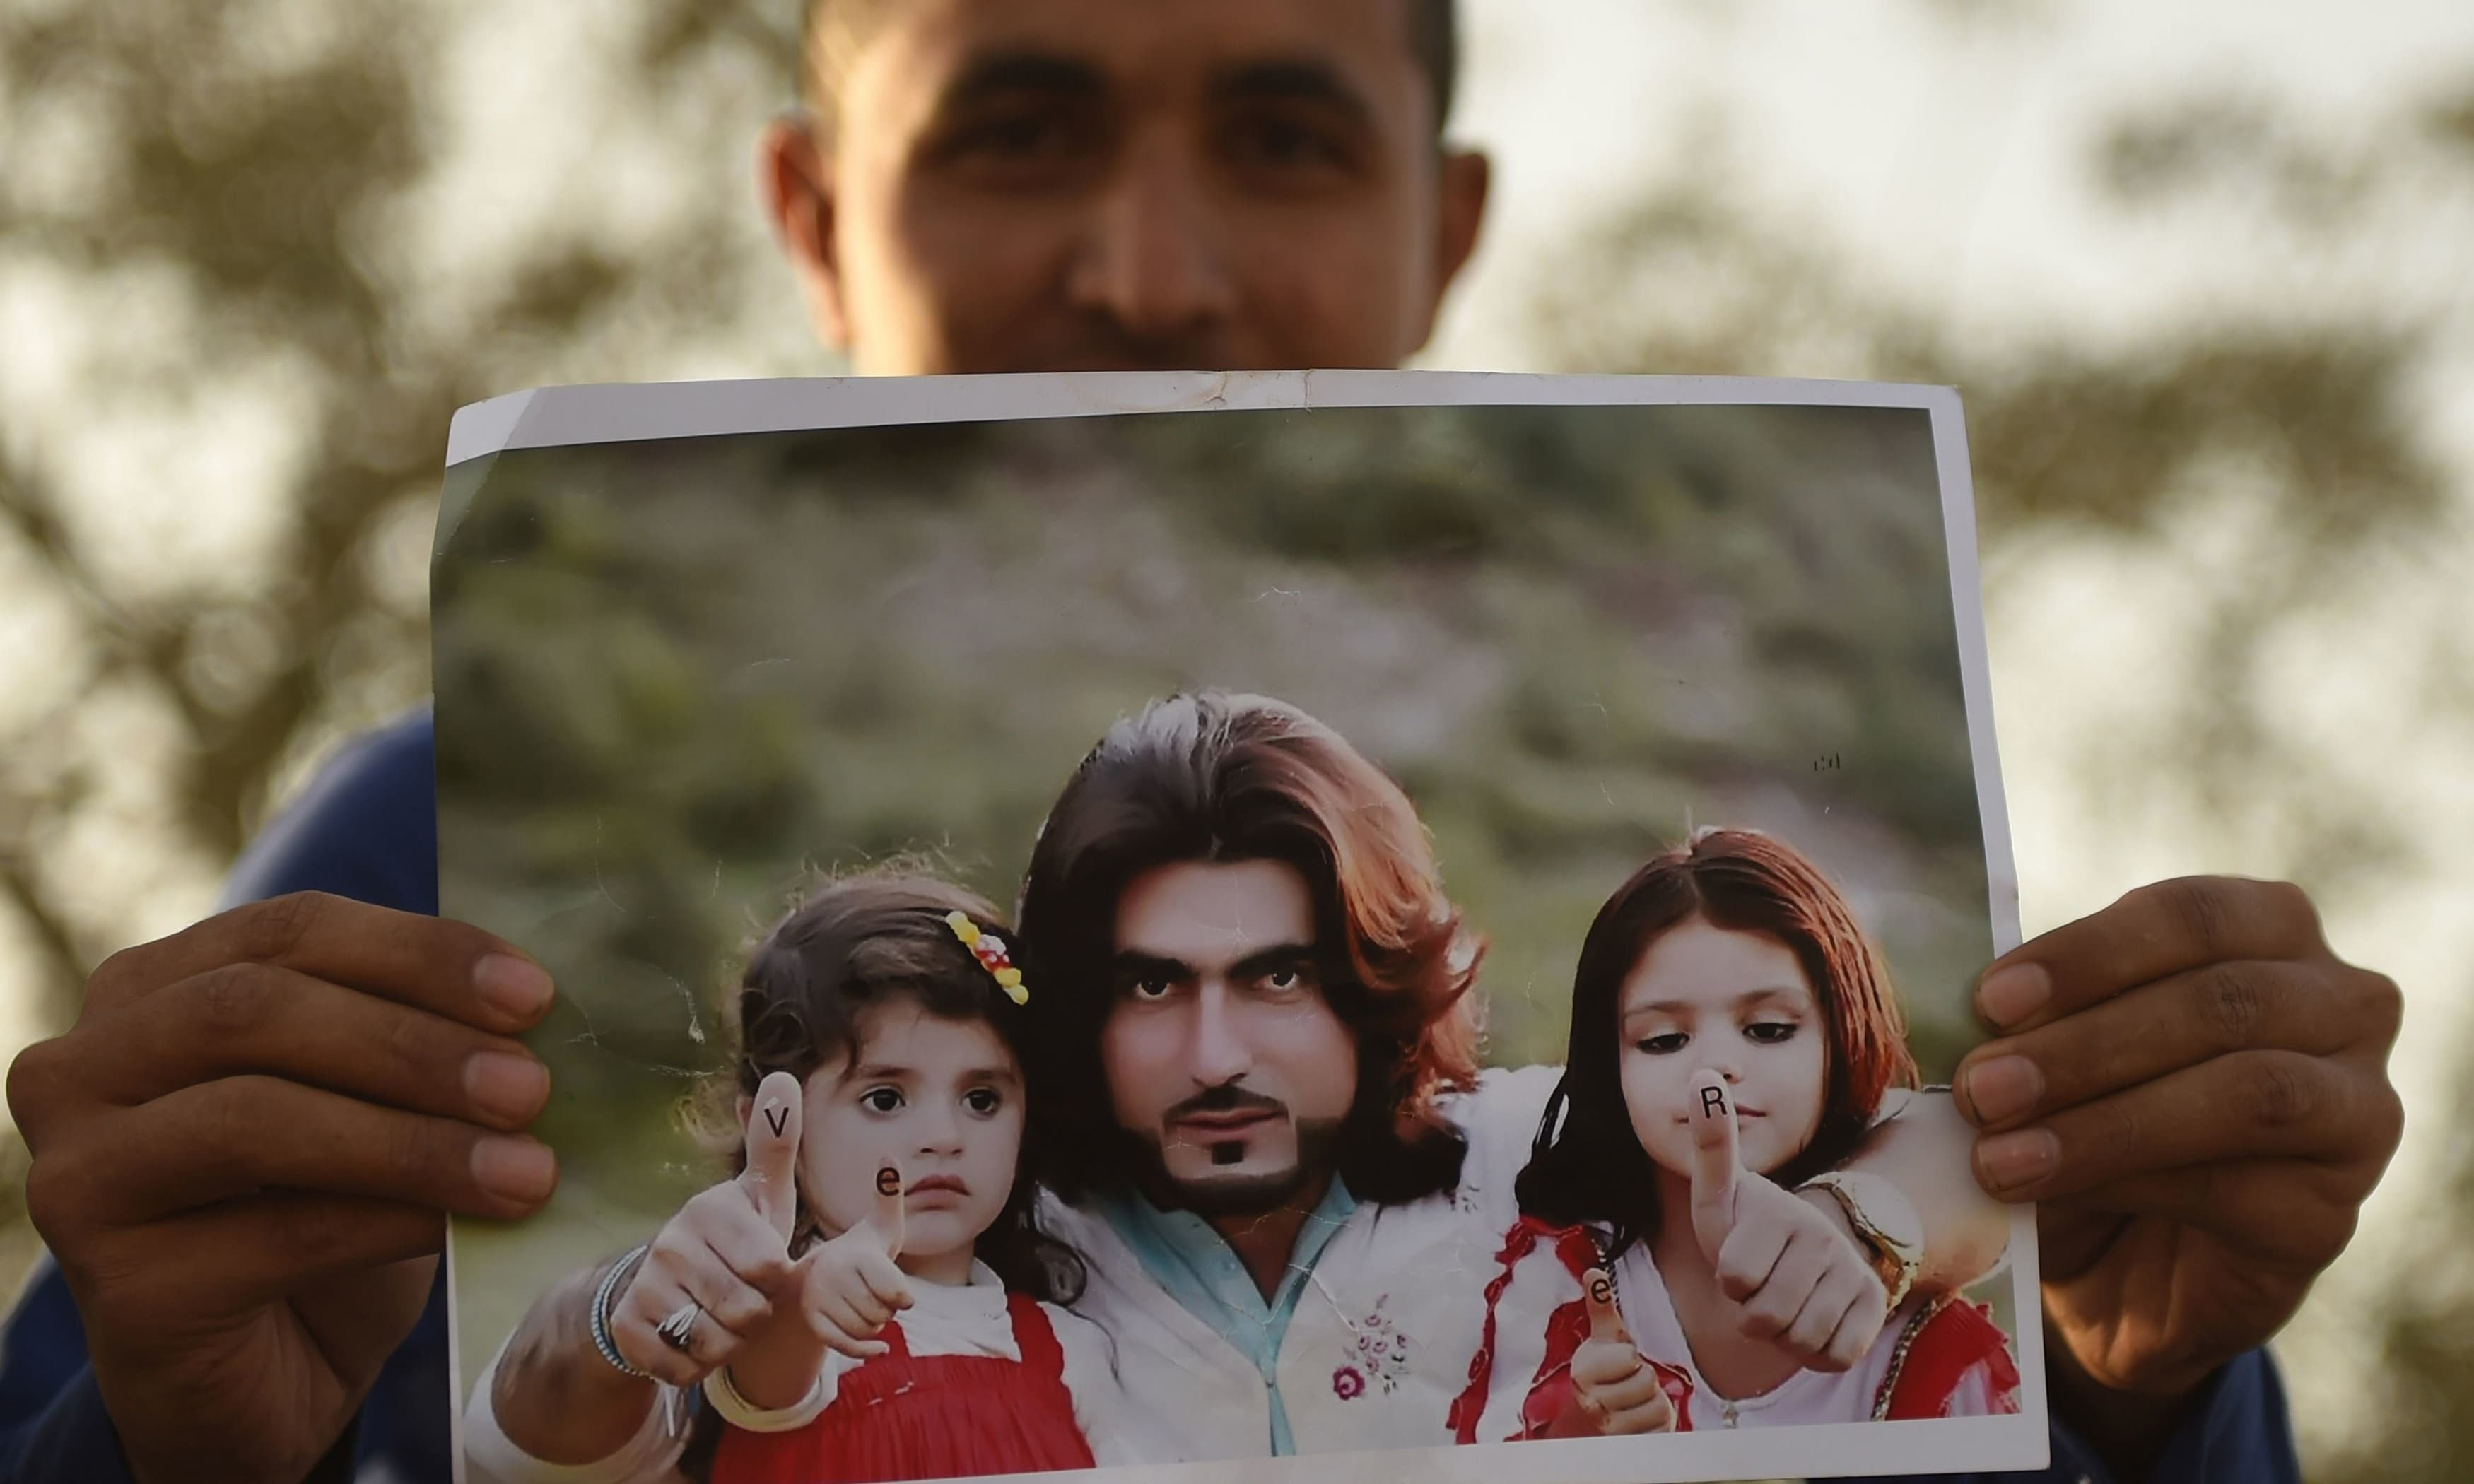 Naqeebullah Mehsud, who hailed from South Waziristan, was among the four suspects killed in an 'encounter' with a police team headed by SSP Anwar in the Usman Khaskheli Goth on the outskirts of Karachi in 2018. — AFP/File